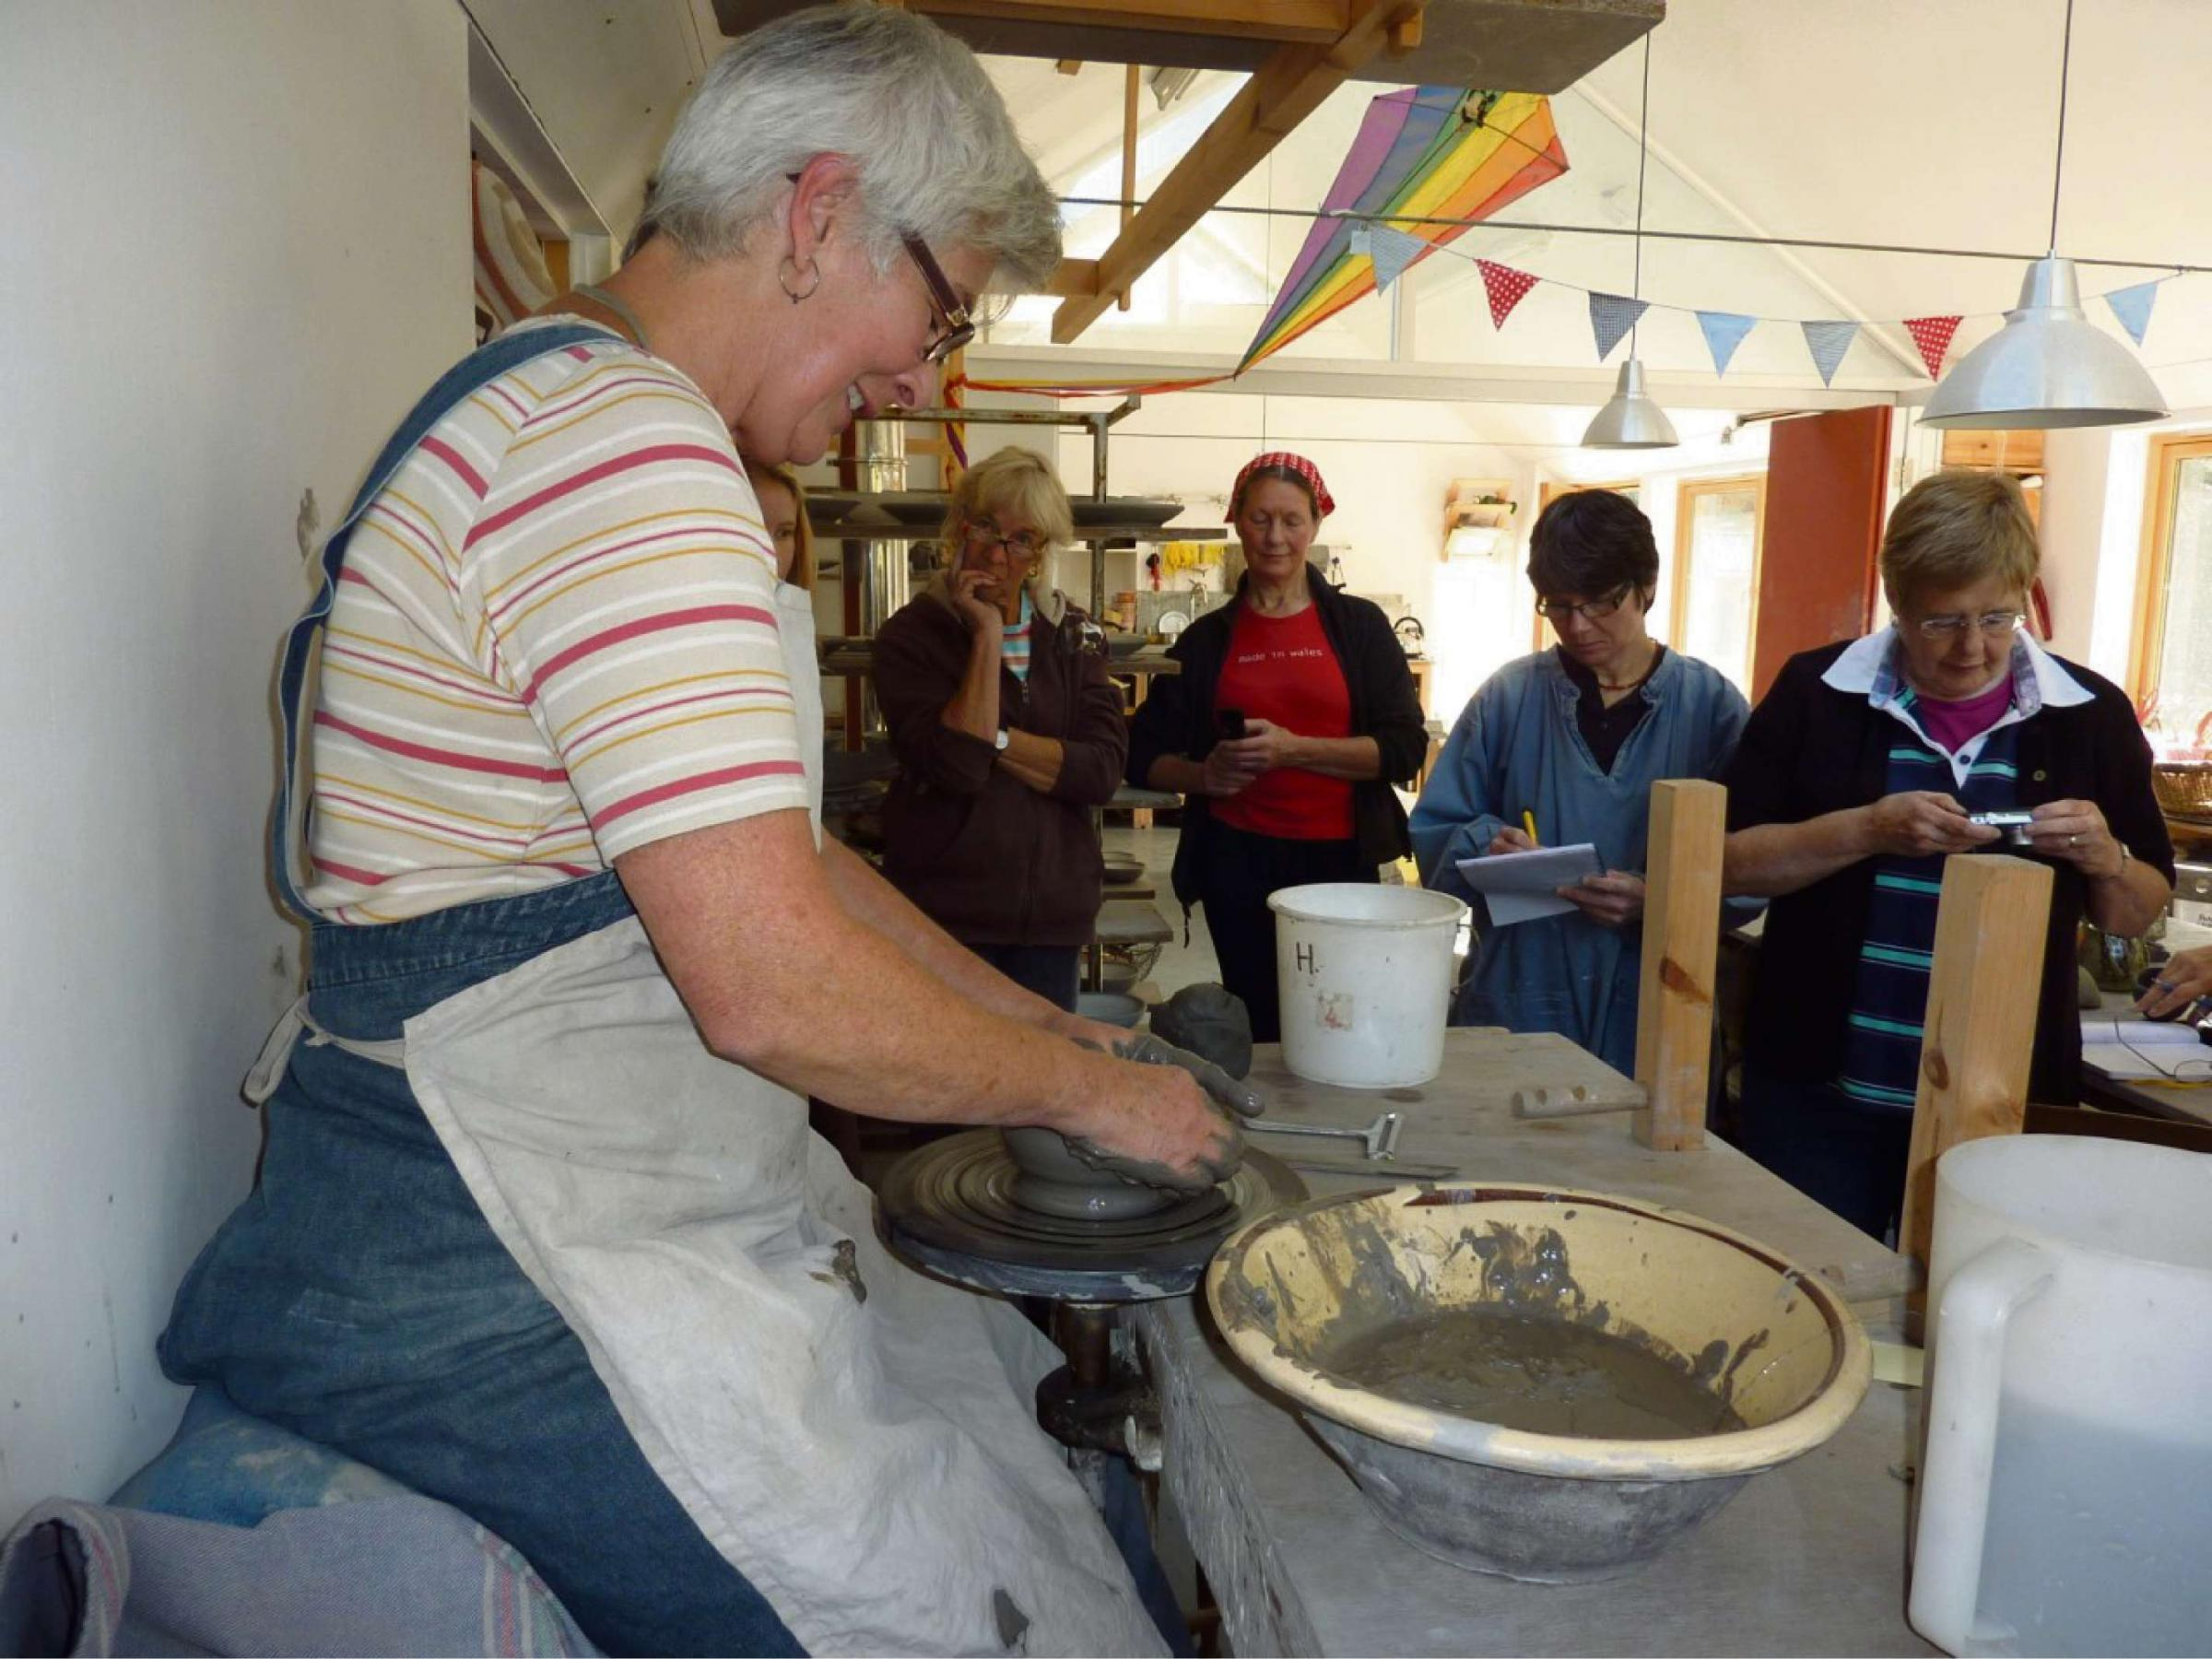 IT'S THE WEEKEND: The popular world of pottery